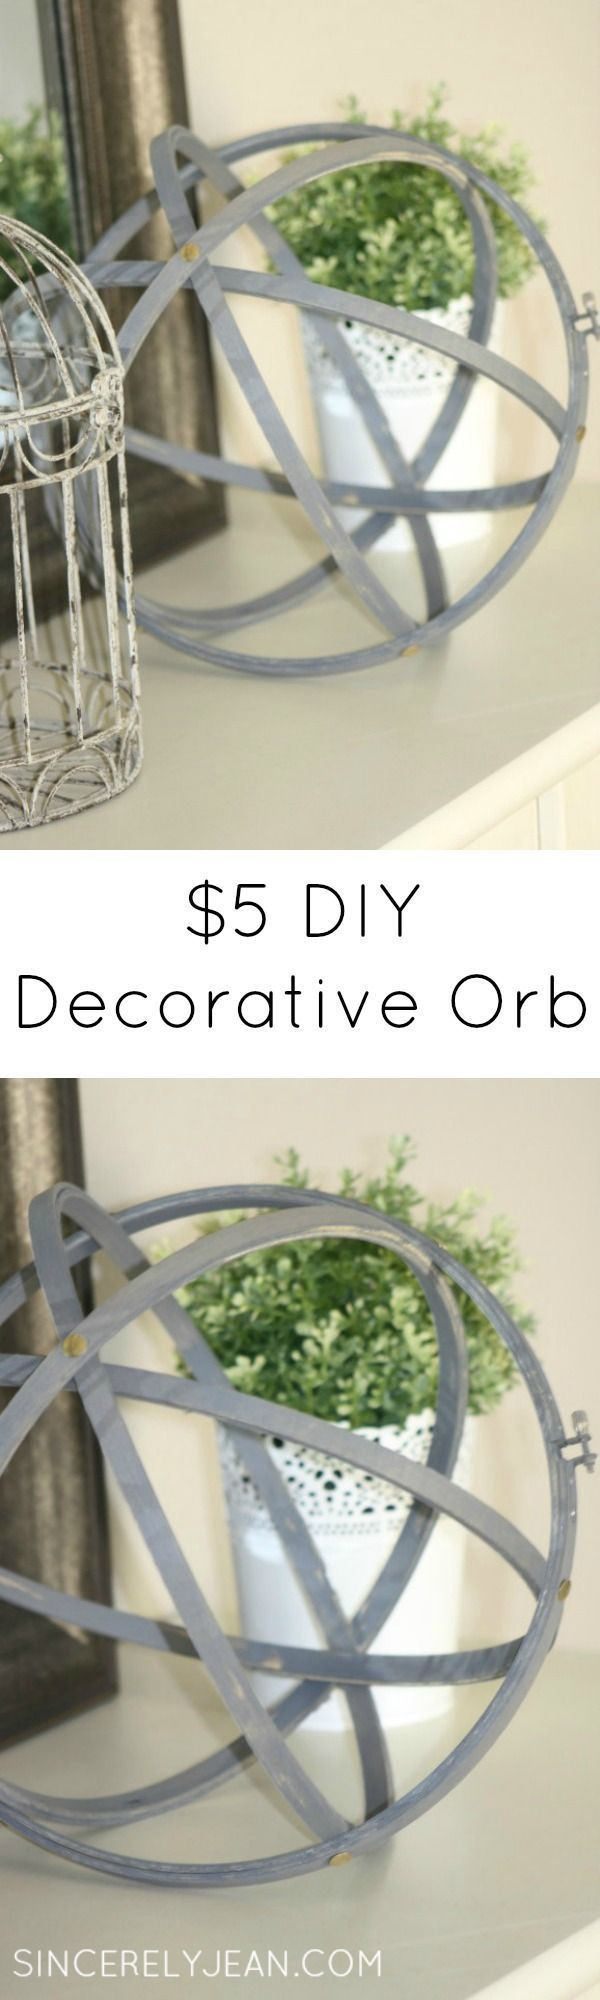 211 best DIY Wood Home Decor by Elle images on Pinterest | House ...